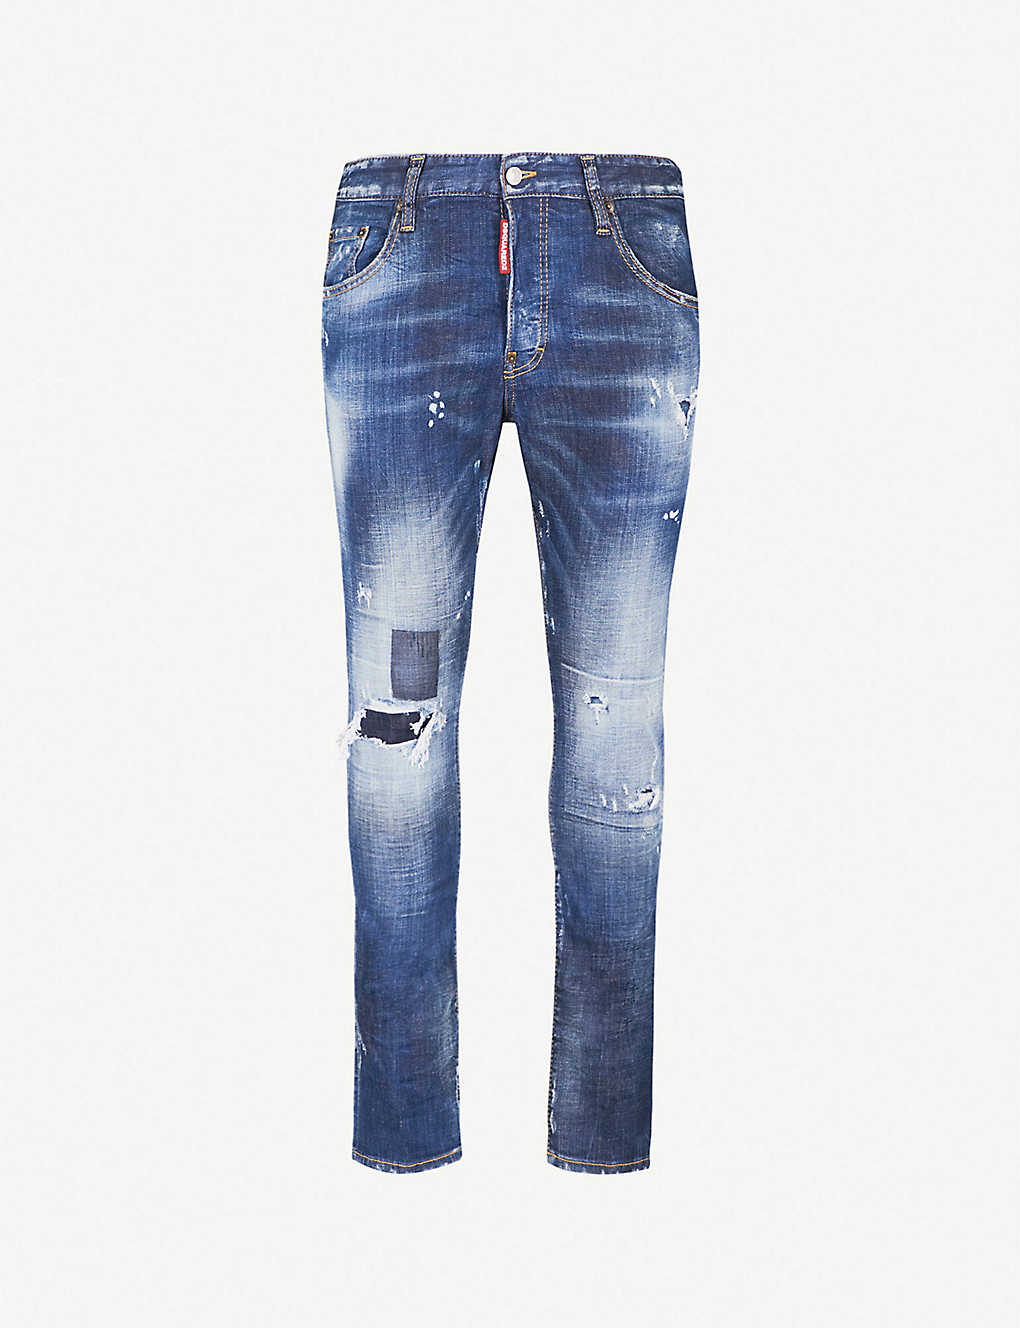 d3161b403 DSQUARED2 - Skater slim-fit skinny jeans | Selfridges.com